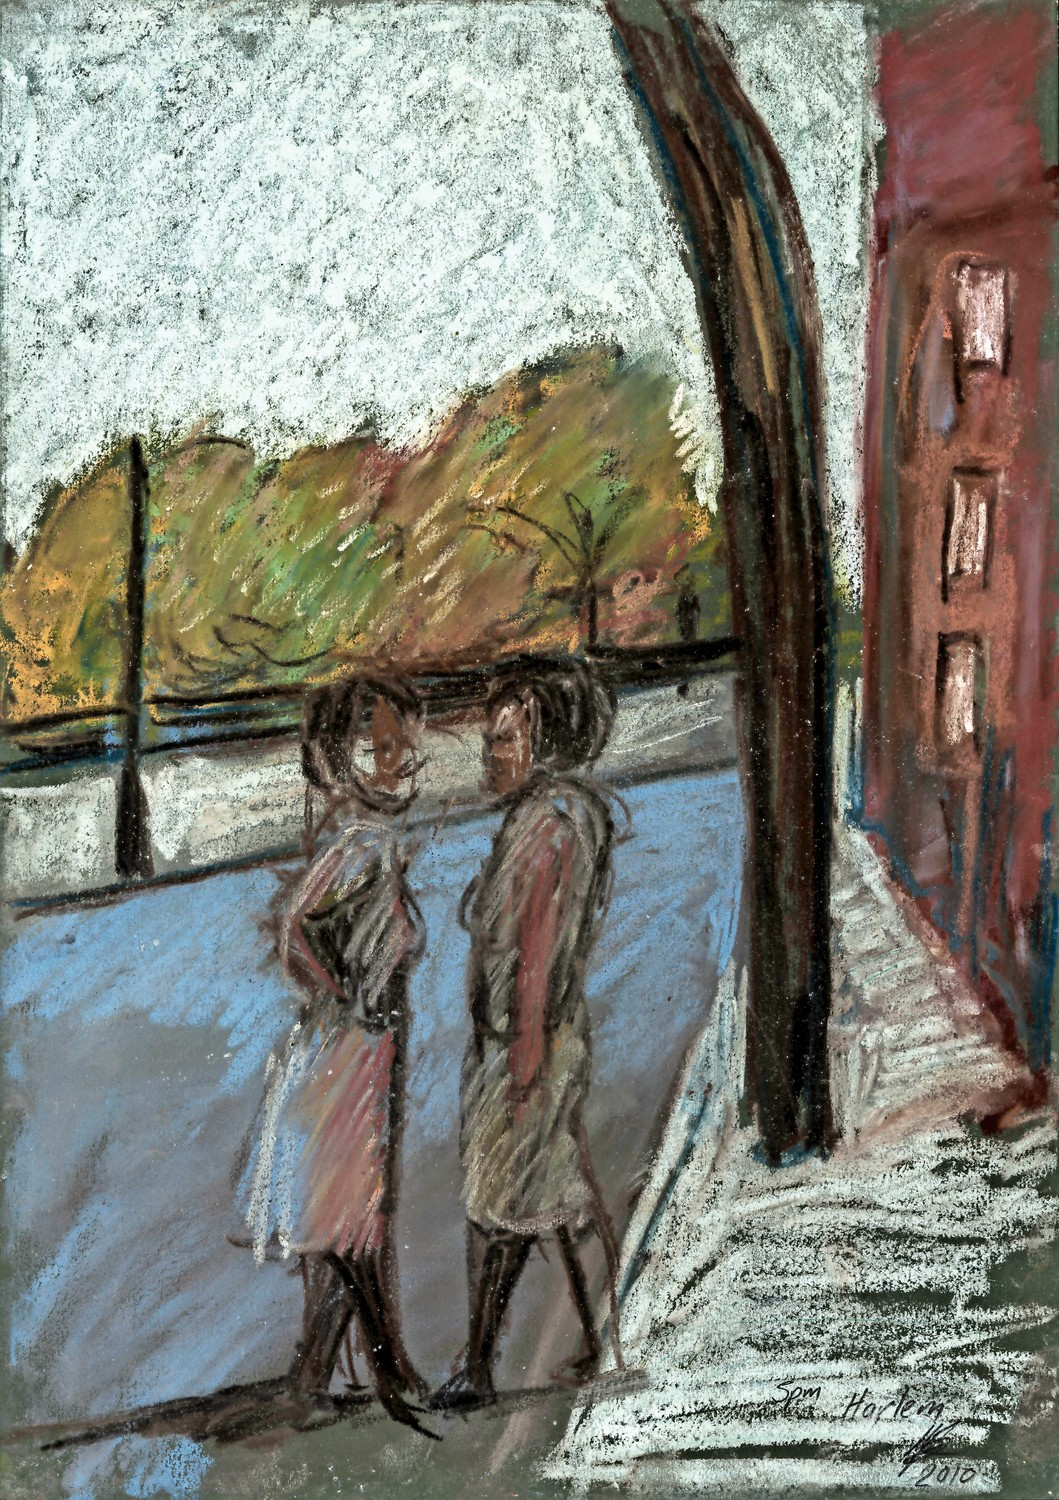 The urban landscape served the as inspiration for Lynette Yiadom-Boakye's 2010 pastel '5 PM Harlem.' It is one of the more than 30 pieces on display at The Studio Museum in Harlem's 'Their Own Harlems' exhibition, which illustrates how an urban landscape served as an artistic inspiration.